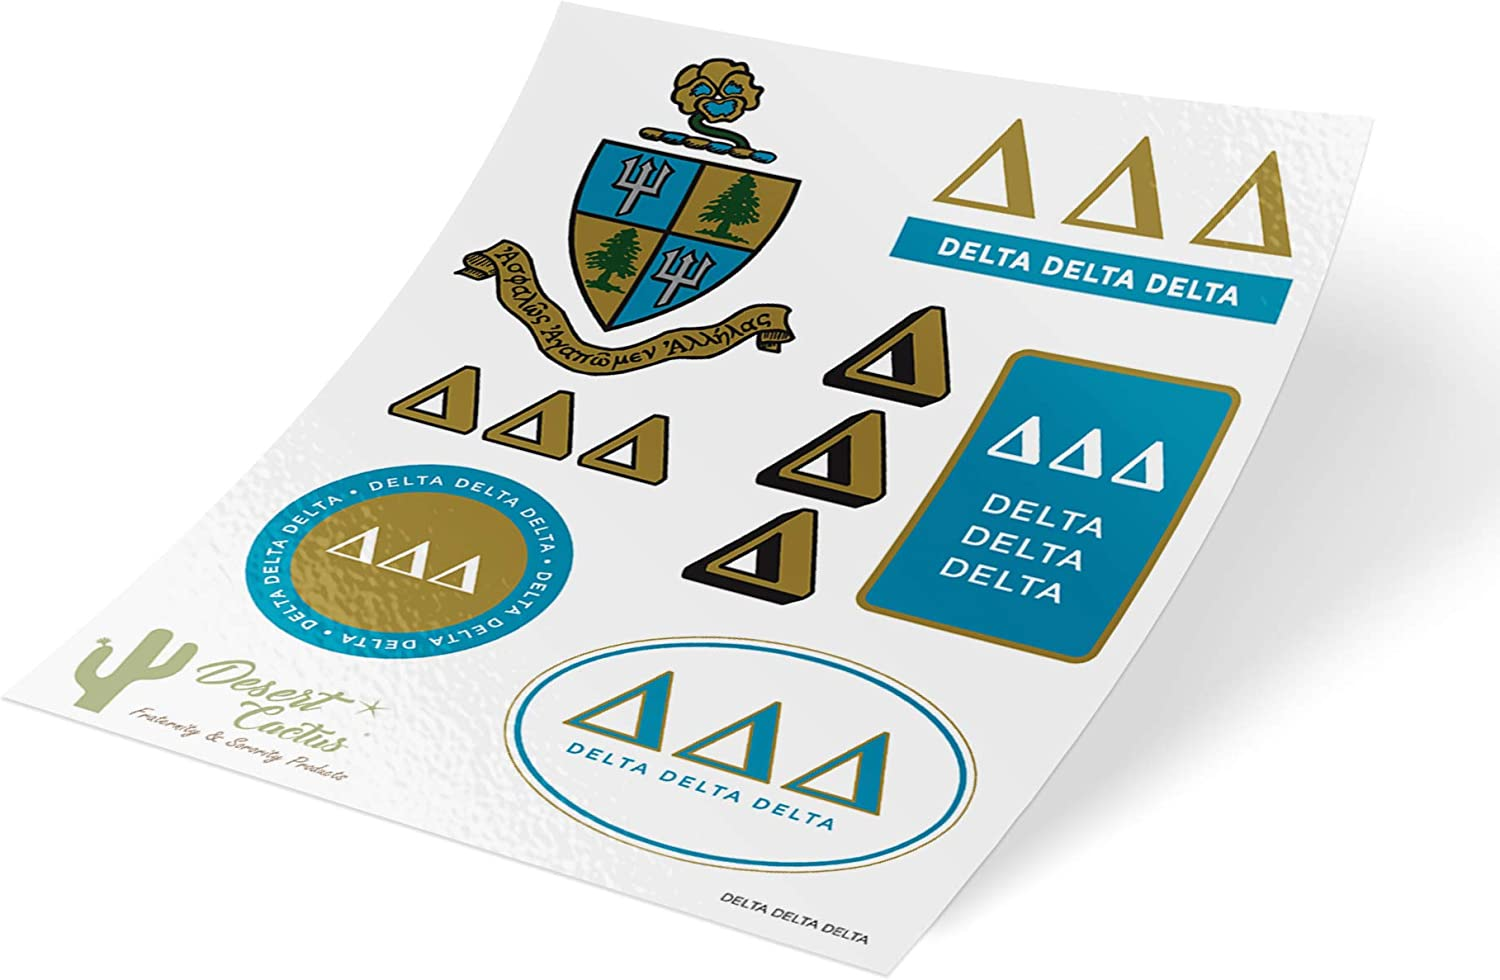 Delta Delta Delta Standard Sticker Sheet Decal Laptop Water Bottle Car tri Delta (Full Sheet - Standard)